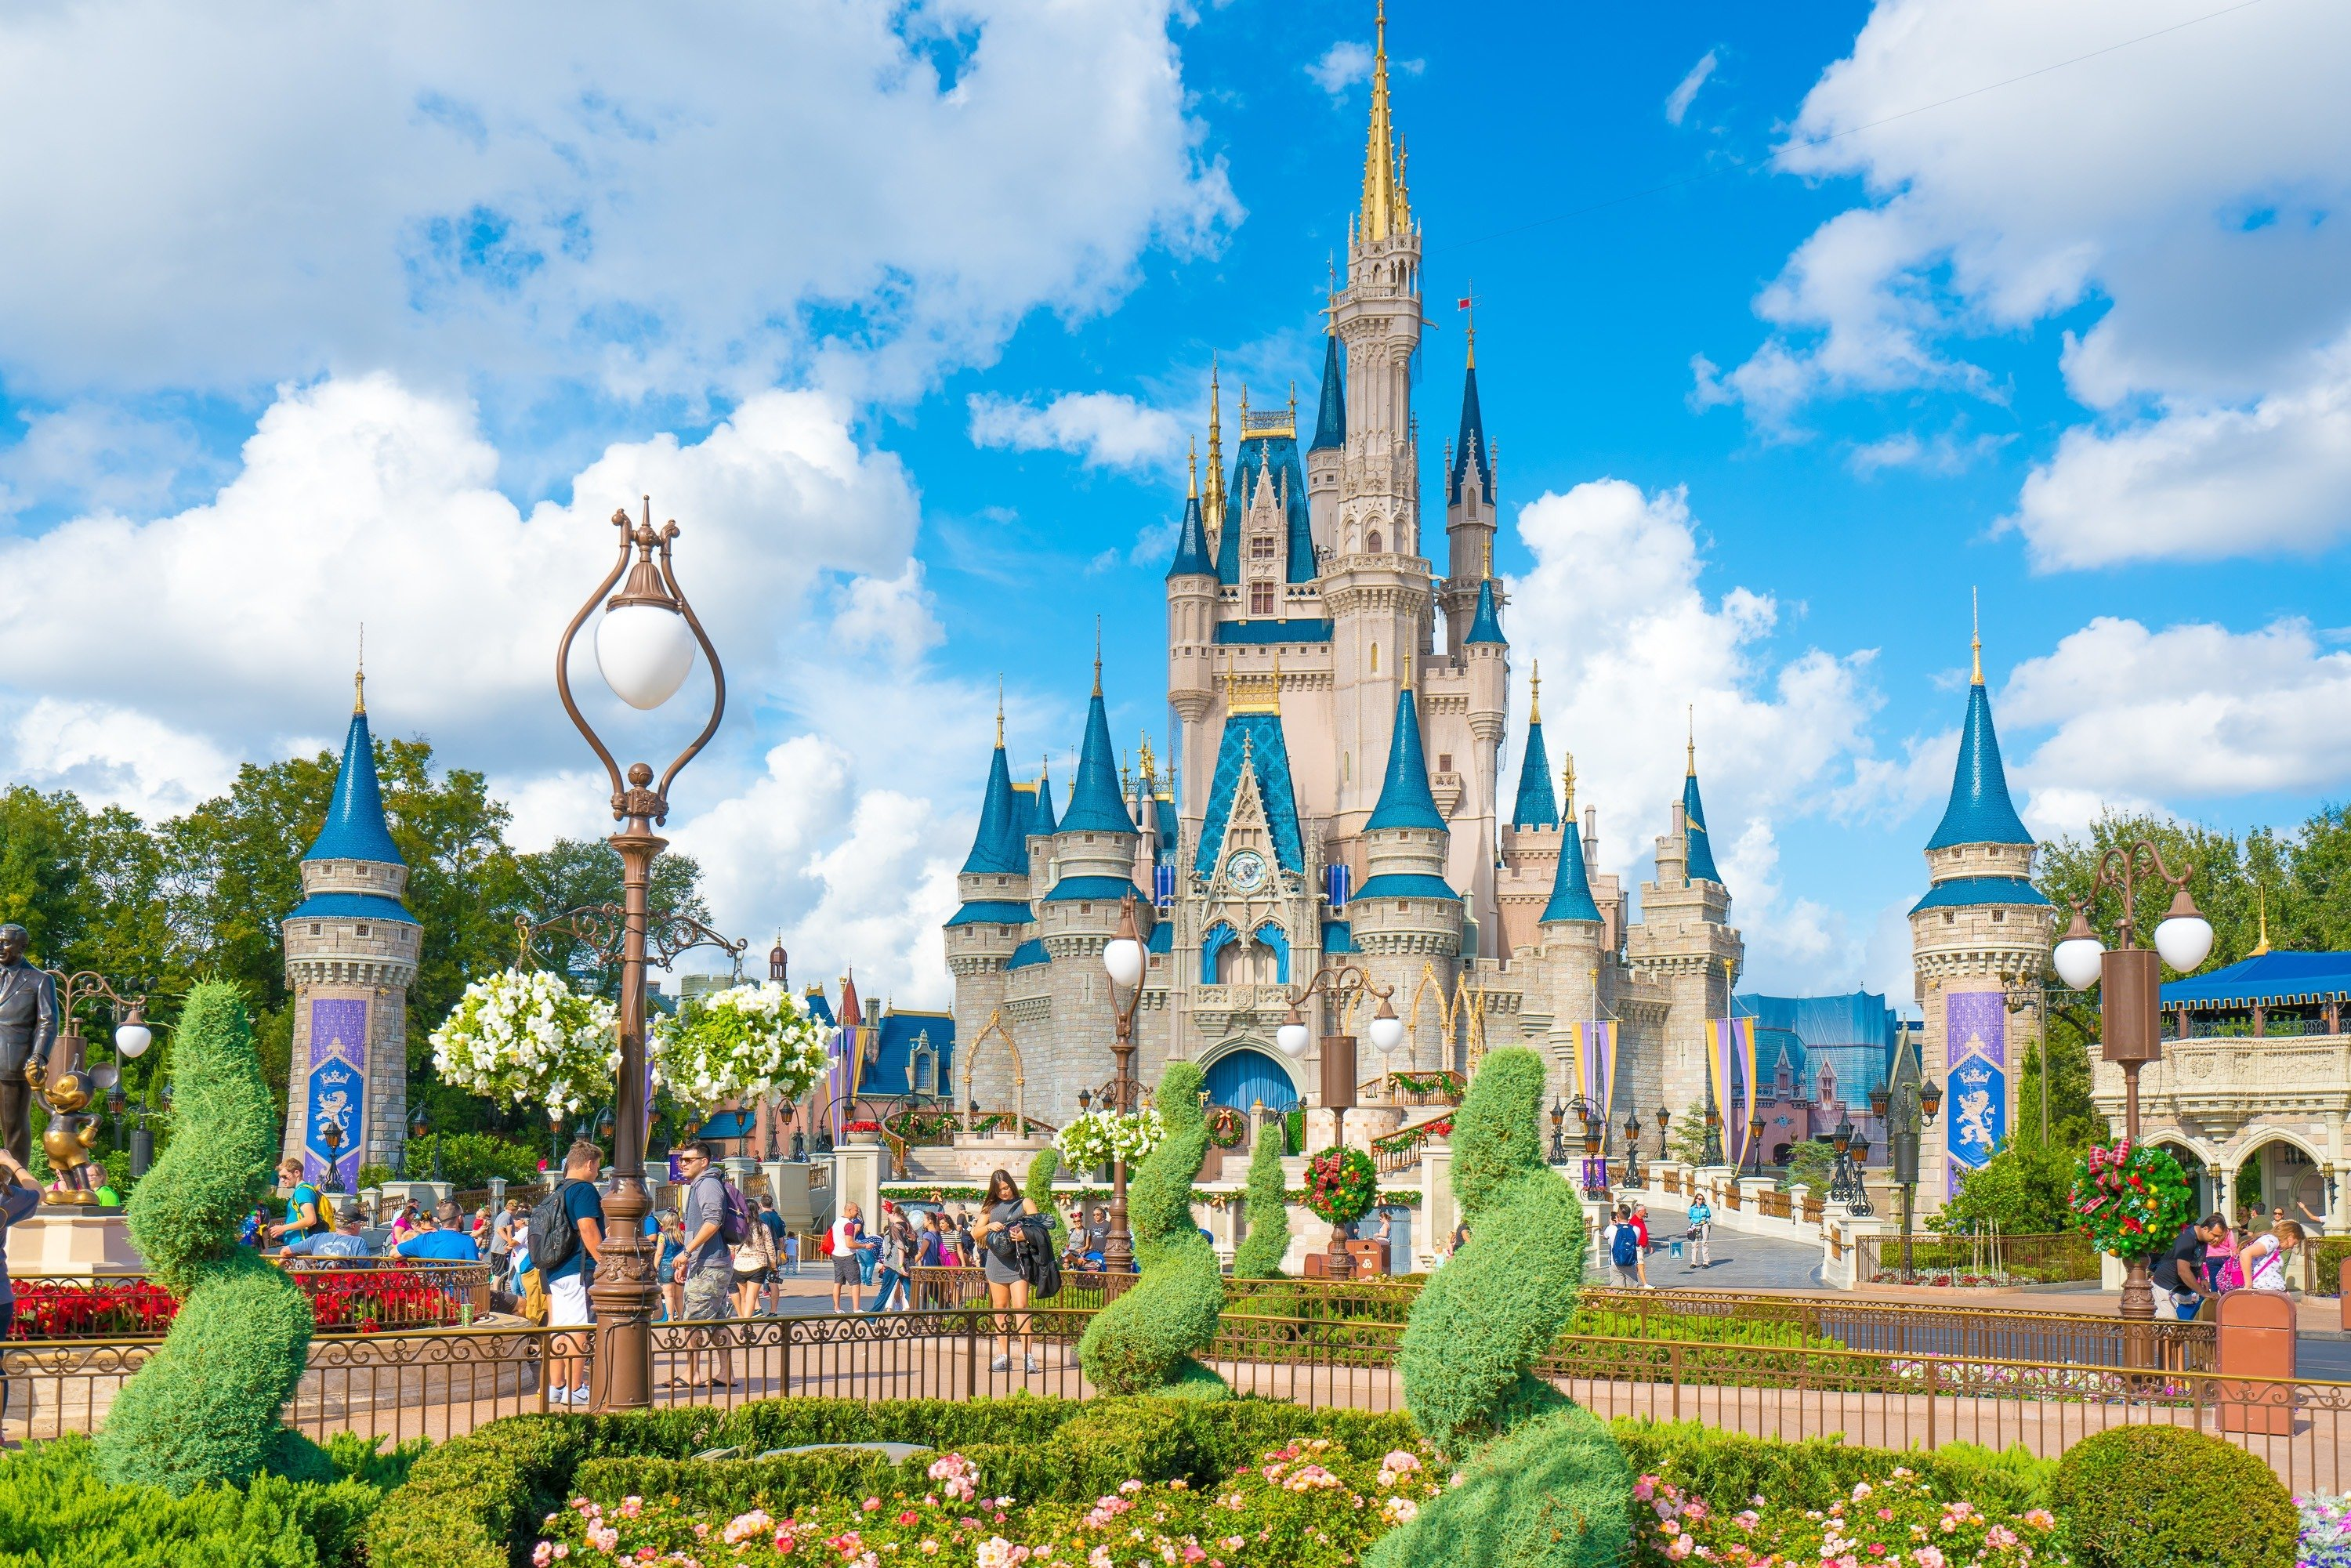 With your upcoming trip to Orlando, purchasing discount Disney World tickets are a surefire way to save time, and to save money. Save time by avoiding the long lines at the Maingate ticket counters, and save money while buying cheap Disney tickets in advance from Orlando.